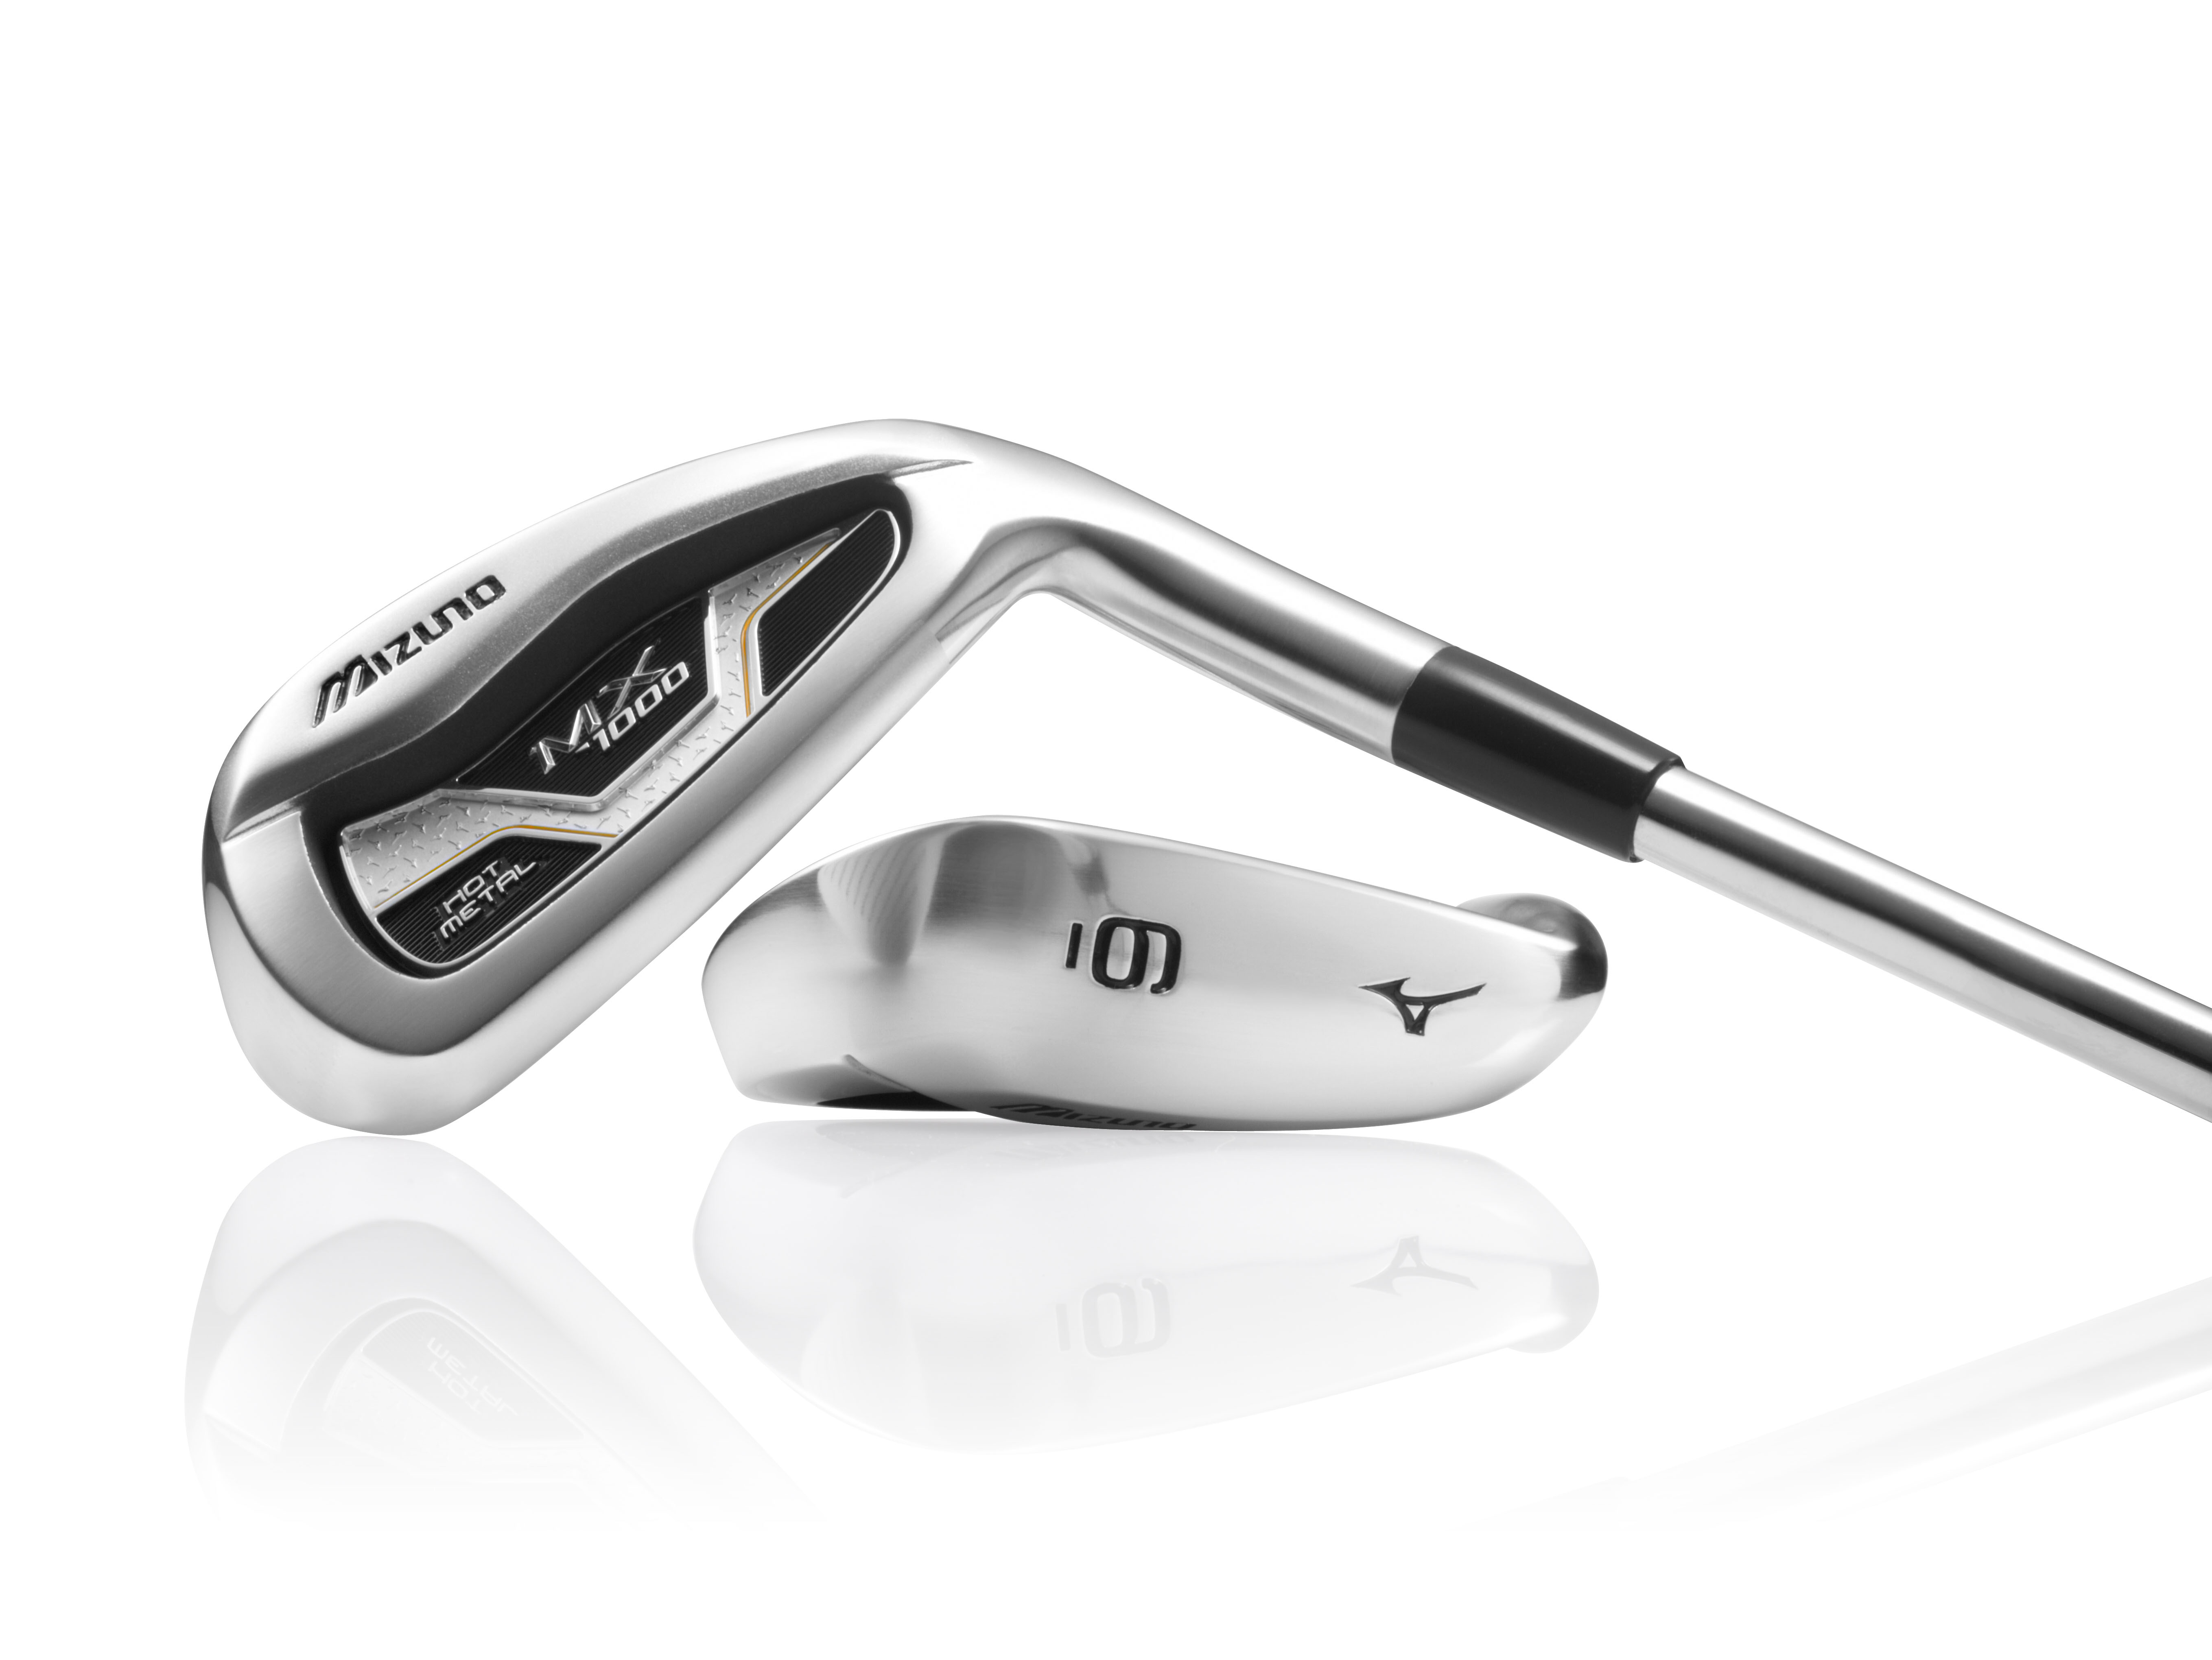 Mizuno MX-1000 Golf Club